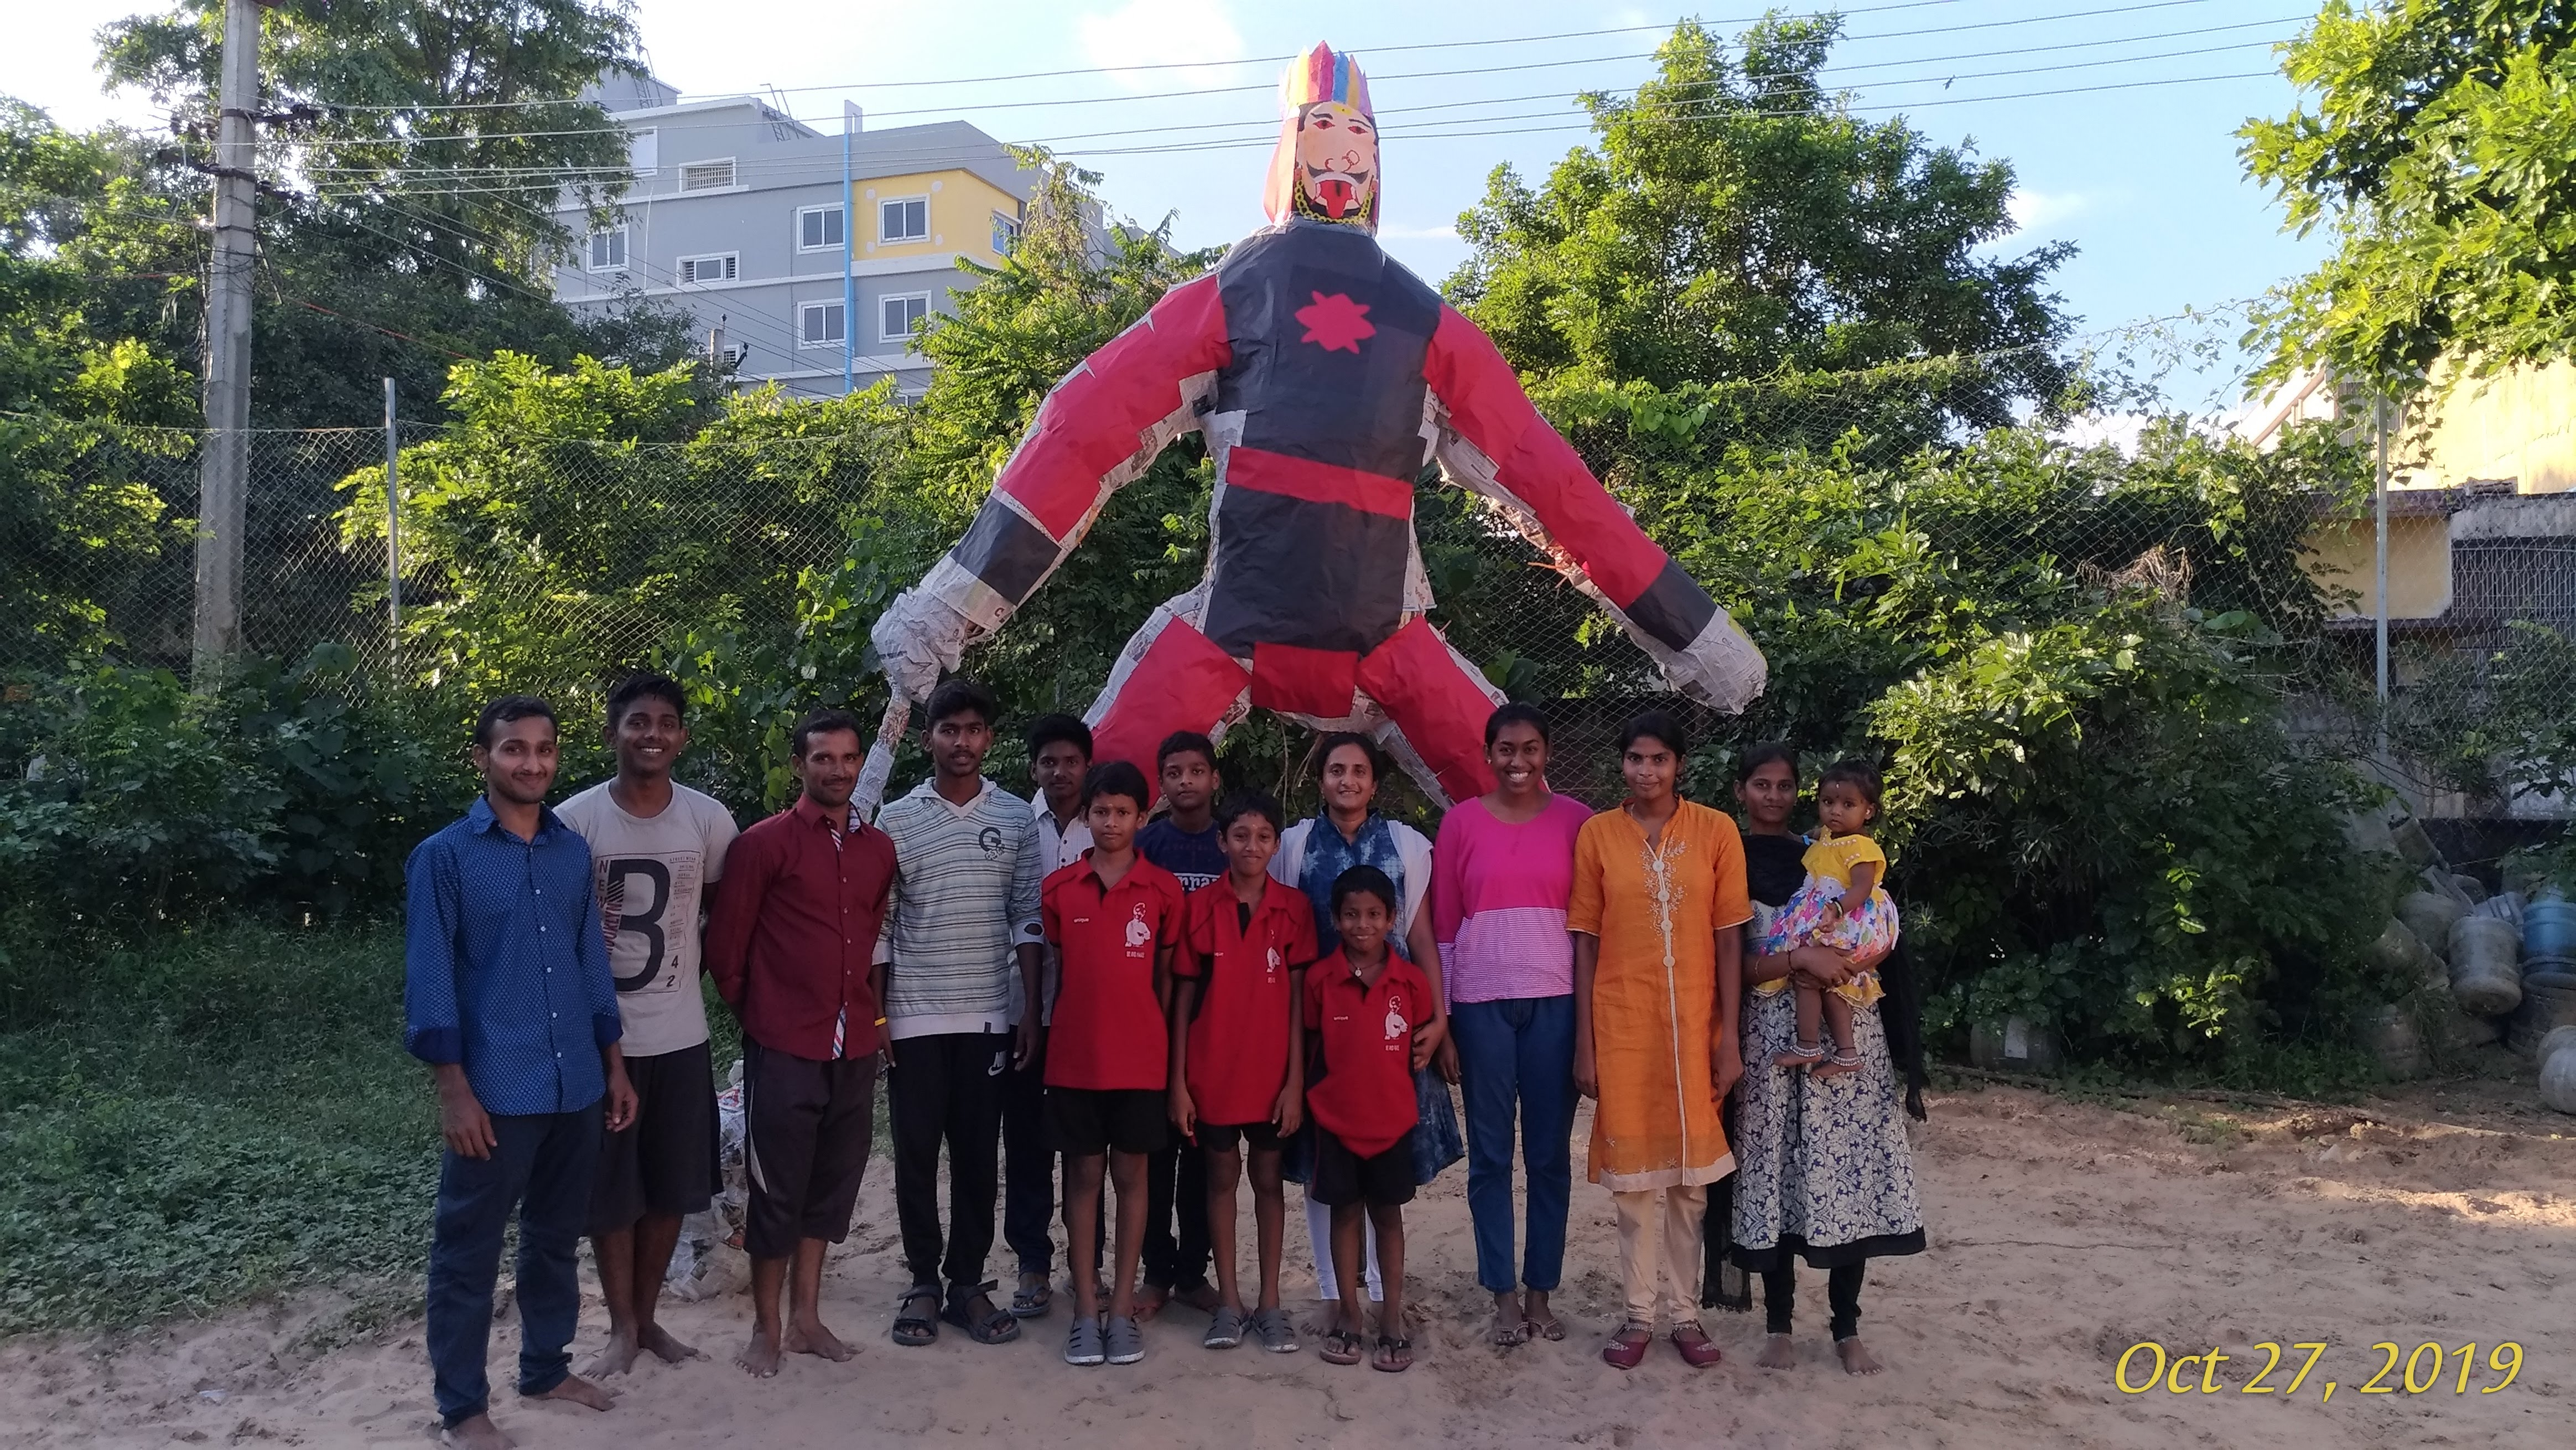 Statue made by Kids